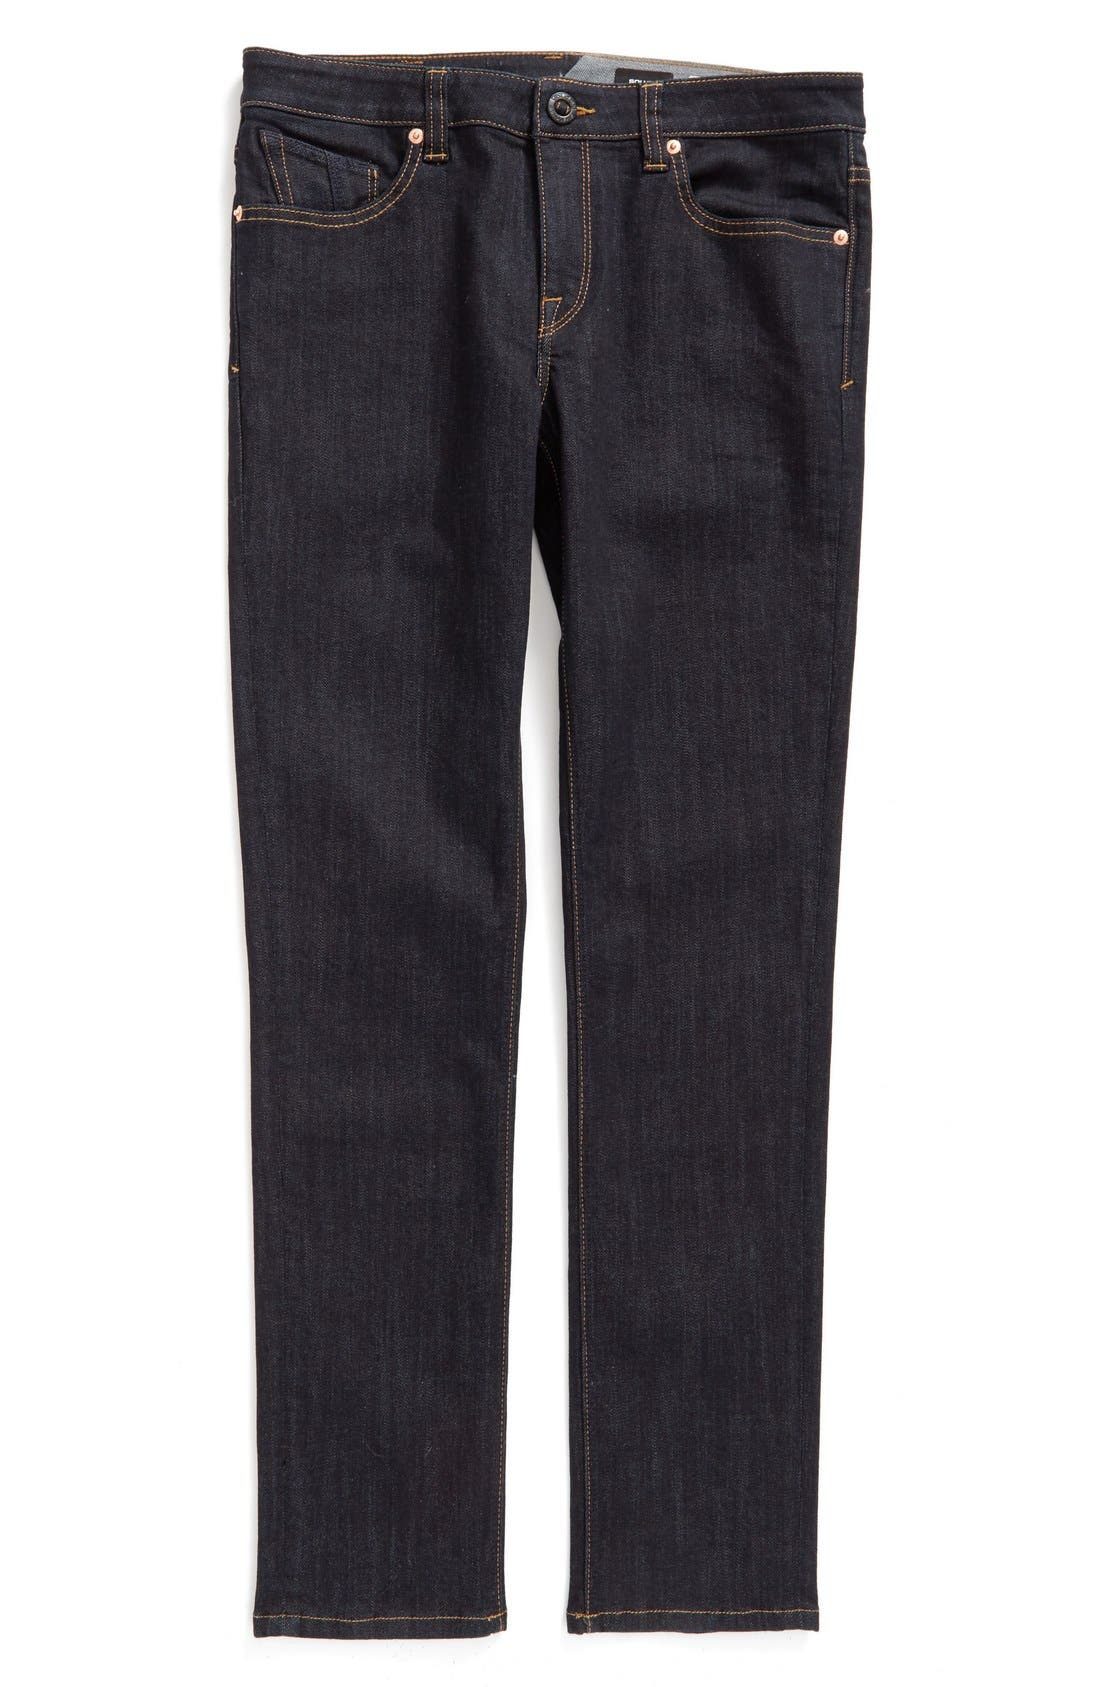 'Solver' Straight Leg Denim Jeans,                             Main thumbnail 1, color,                             BLUE RINSE